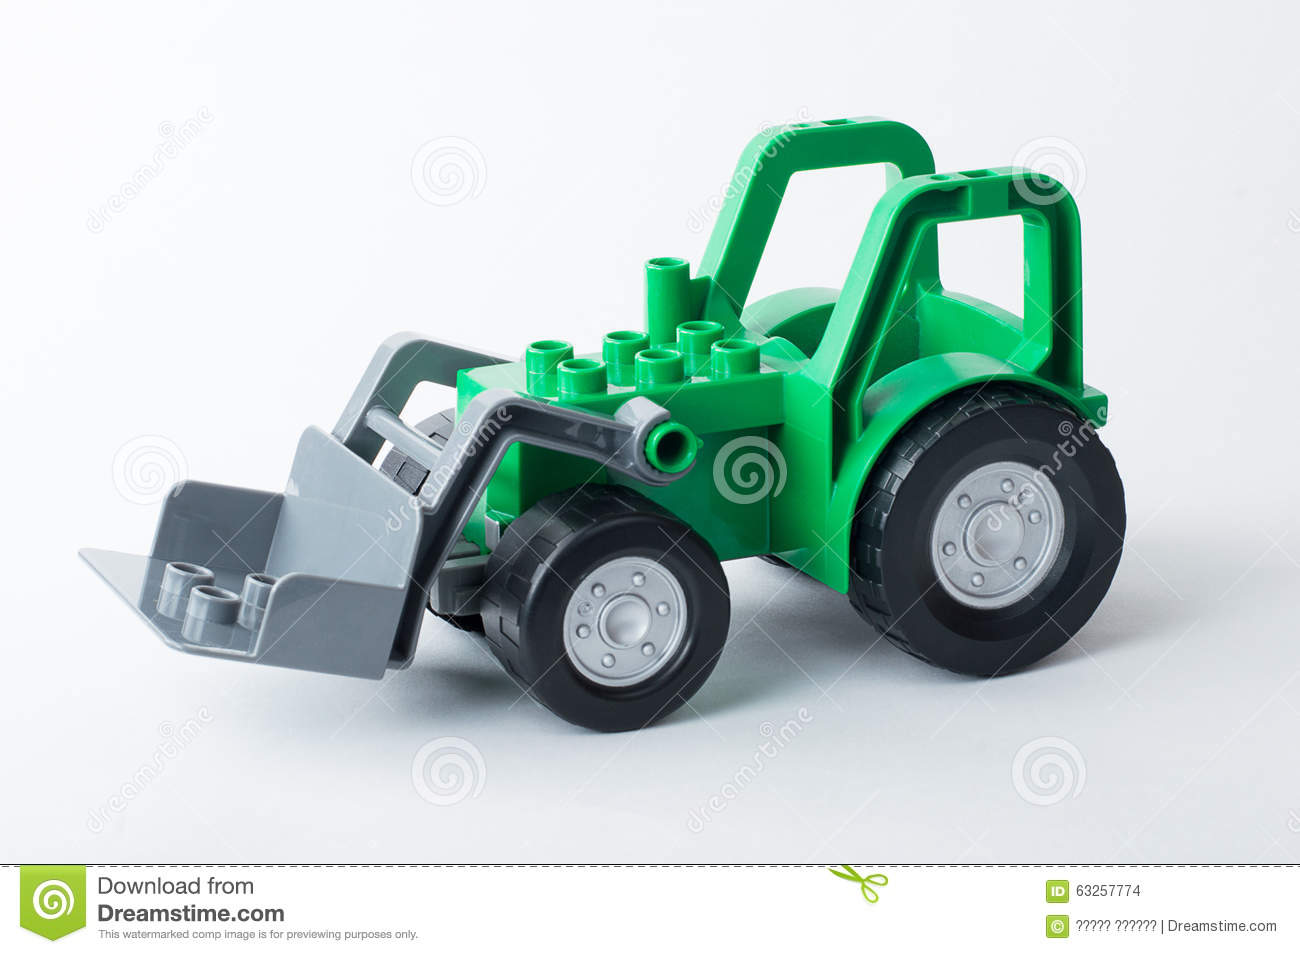 Up The Tractor Green Tractor With Bucket Cartoon : Green tractor with gray bucket on a white background stock